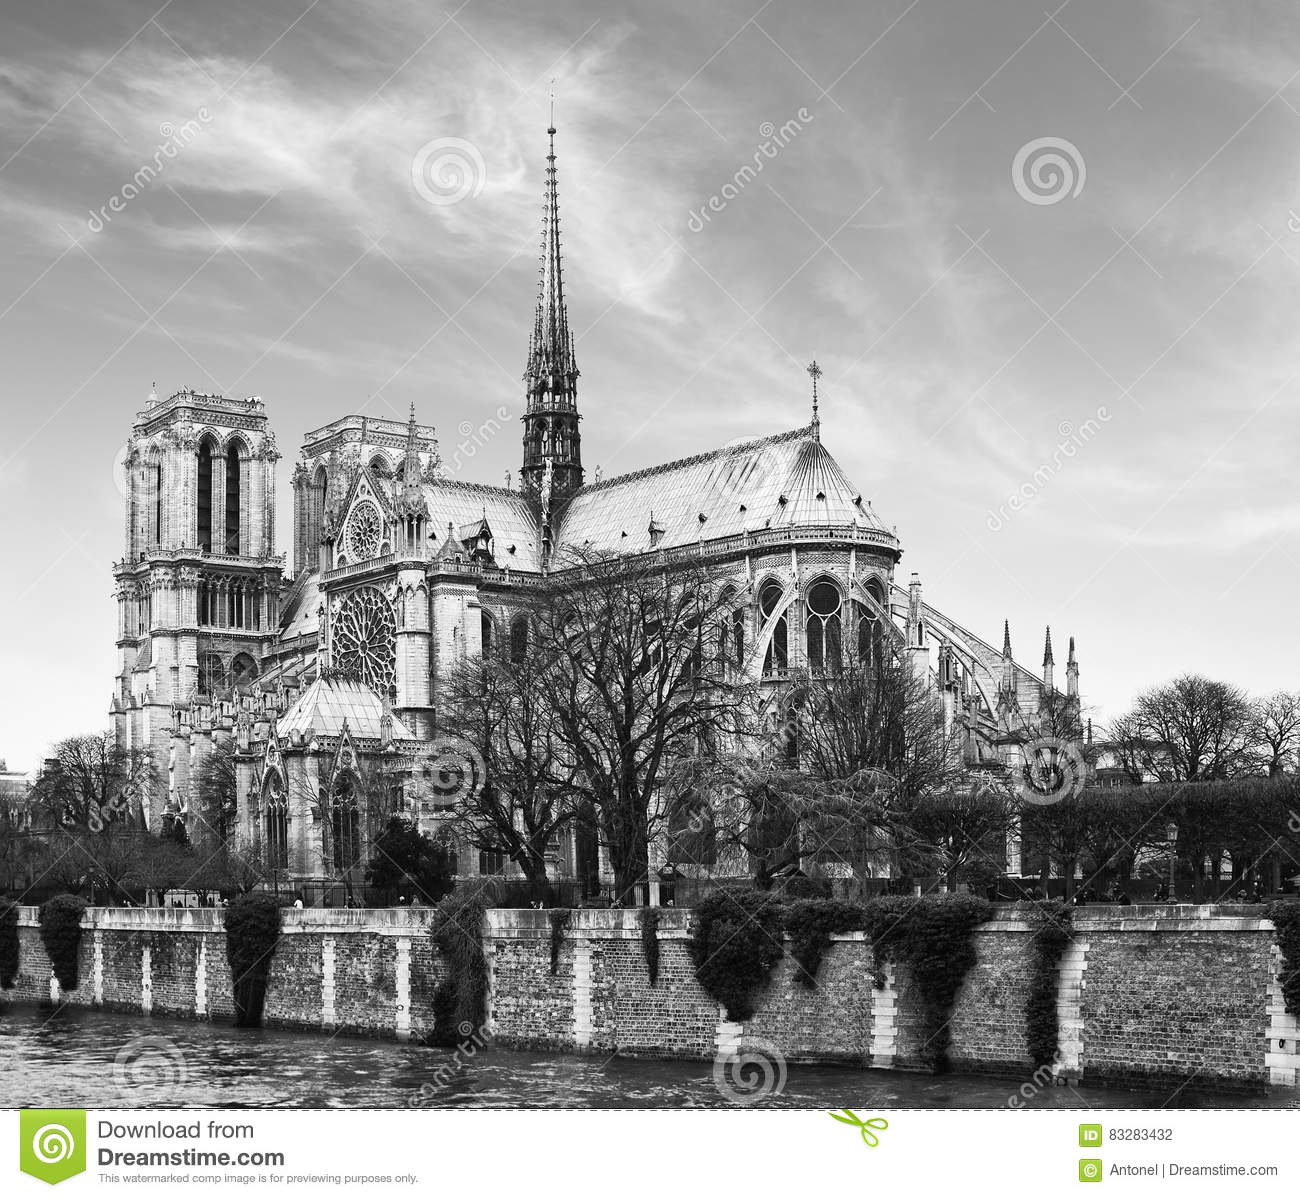 black singles in notre dame Are you notre dating ndtv: notre dame television loading  the very messed up origins of hunchback of notre dame | disney explained - jon solo.